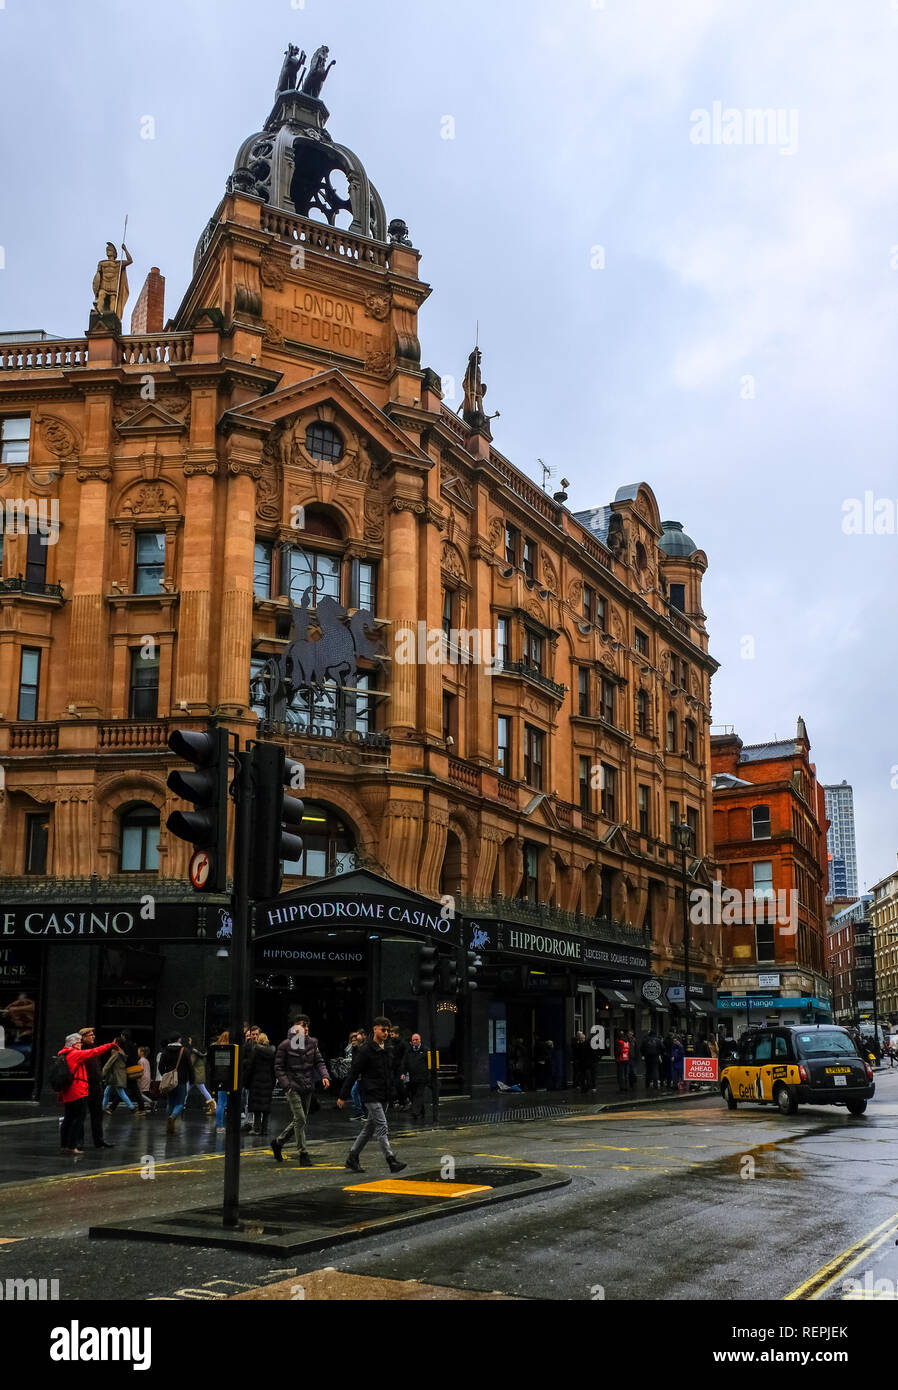 LONDON, UK - March 12: Famous Casino London Hippodrome on a rainy day. London Hippodrome was built in 1900 by Frank Matcham as a hippodrome for circus - Stock Image